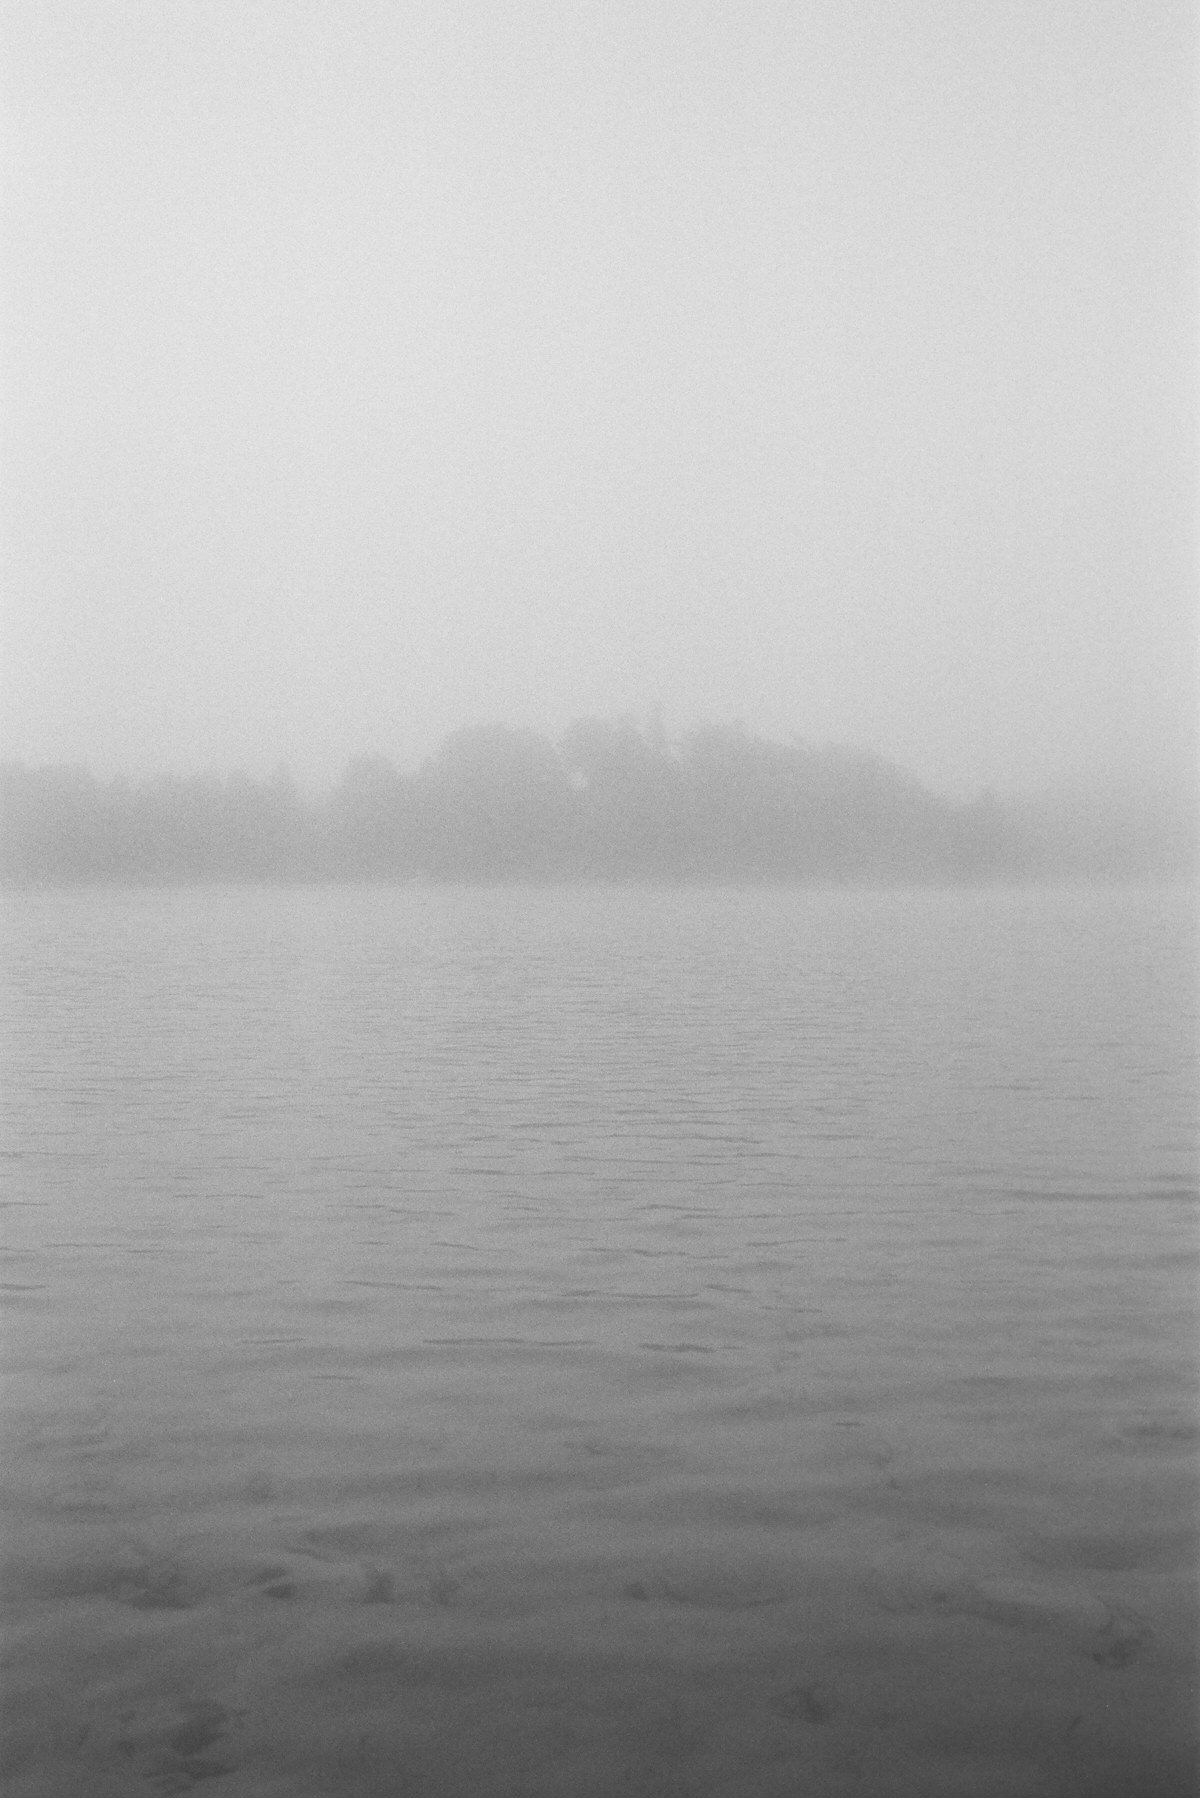 Black-and-white-film-photography-of-Elkhart-Lake-Wisconsin-by-Studio-L-artist-photographer-Laura-Schneider-_012